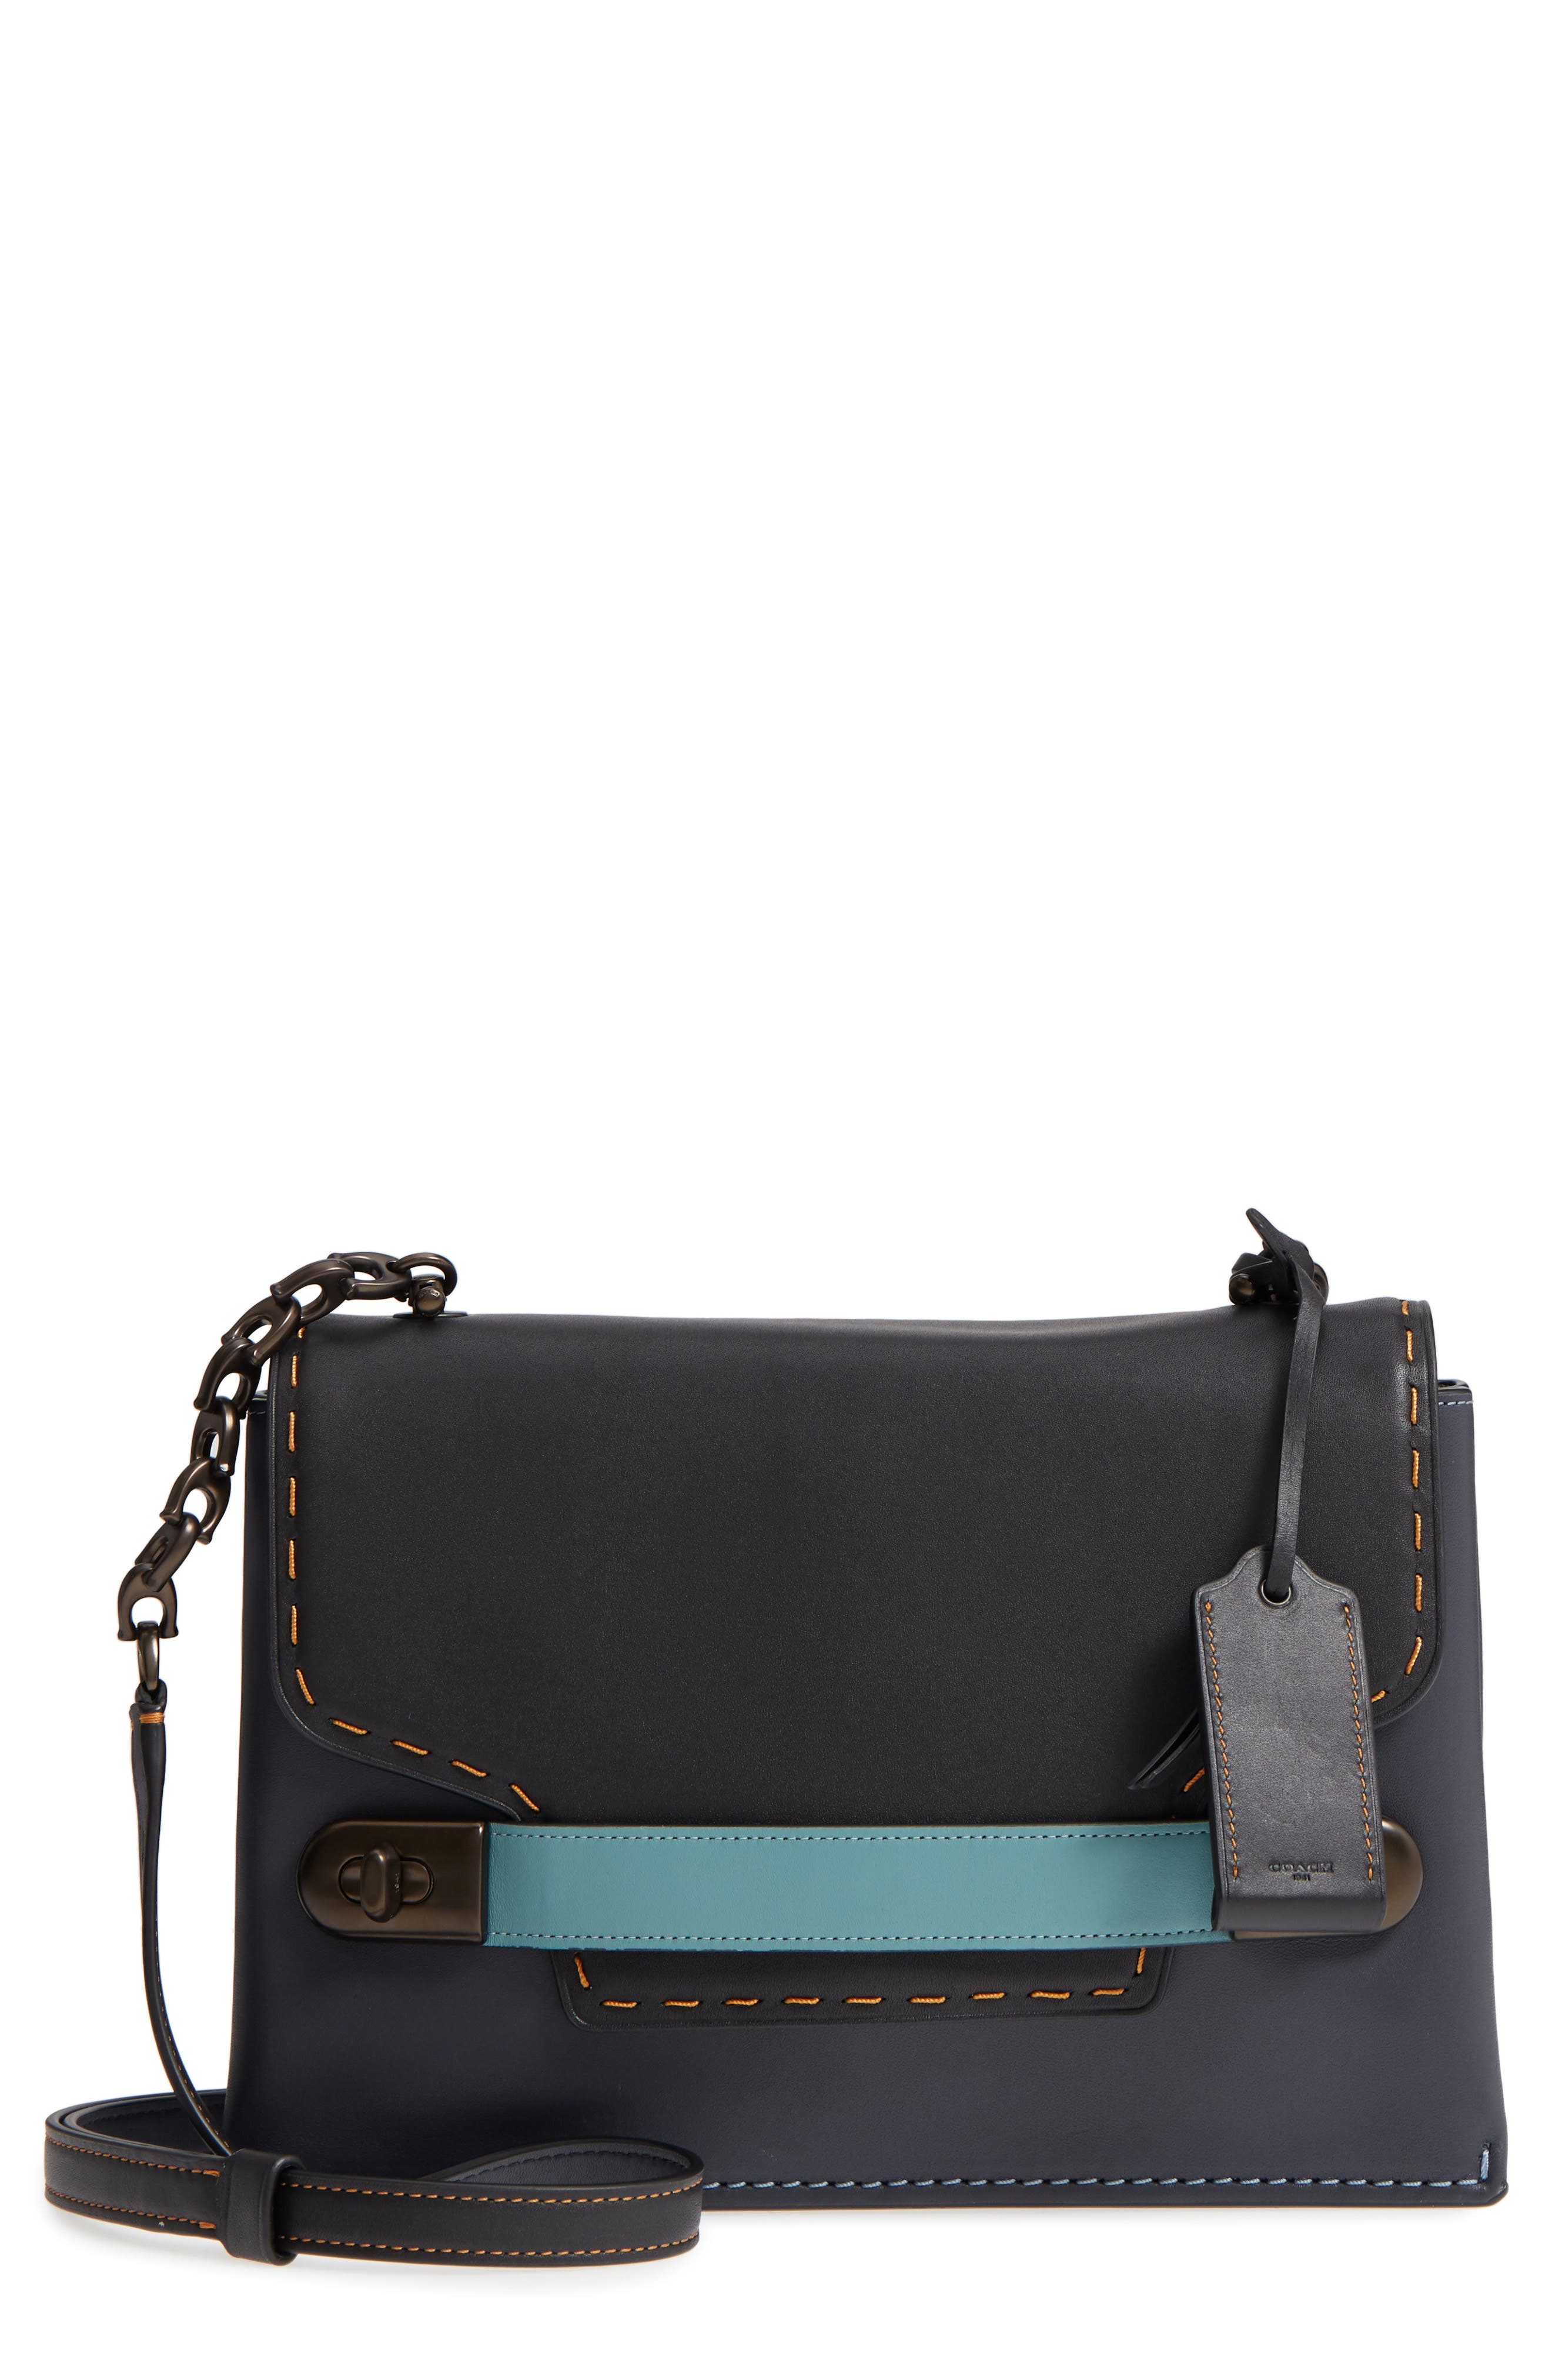 Swagger Chain Leather Crossbody Bag,                             Main thumbnail 1, color,                             428